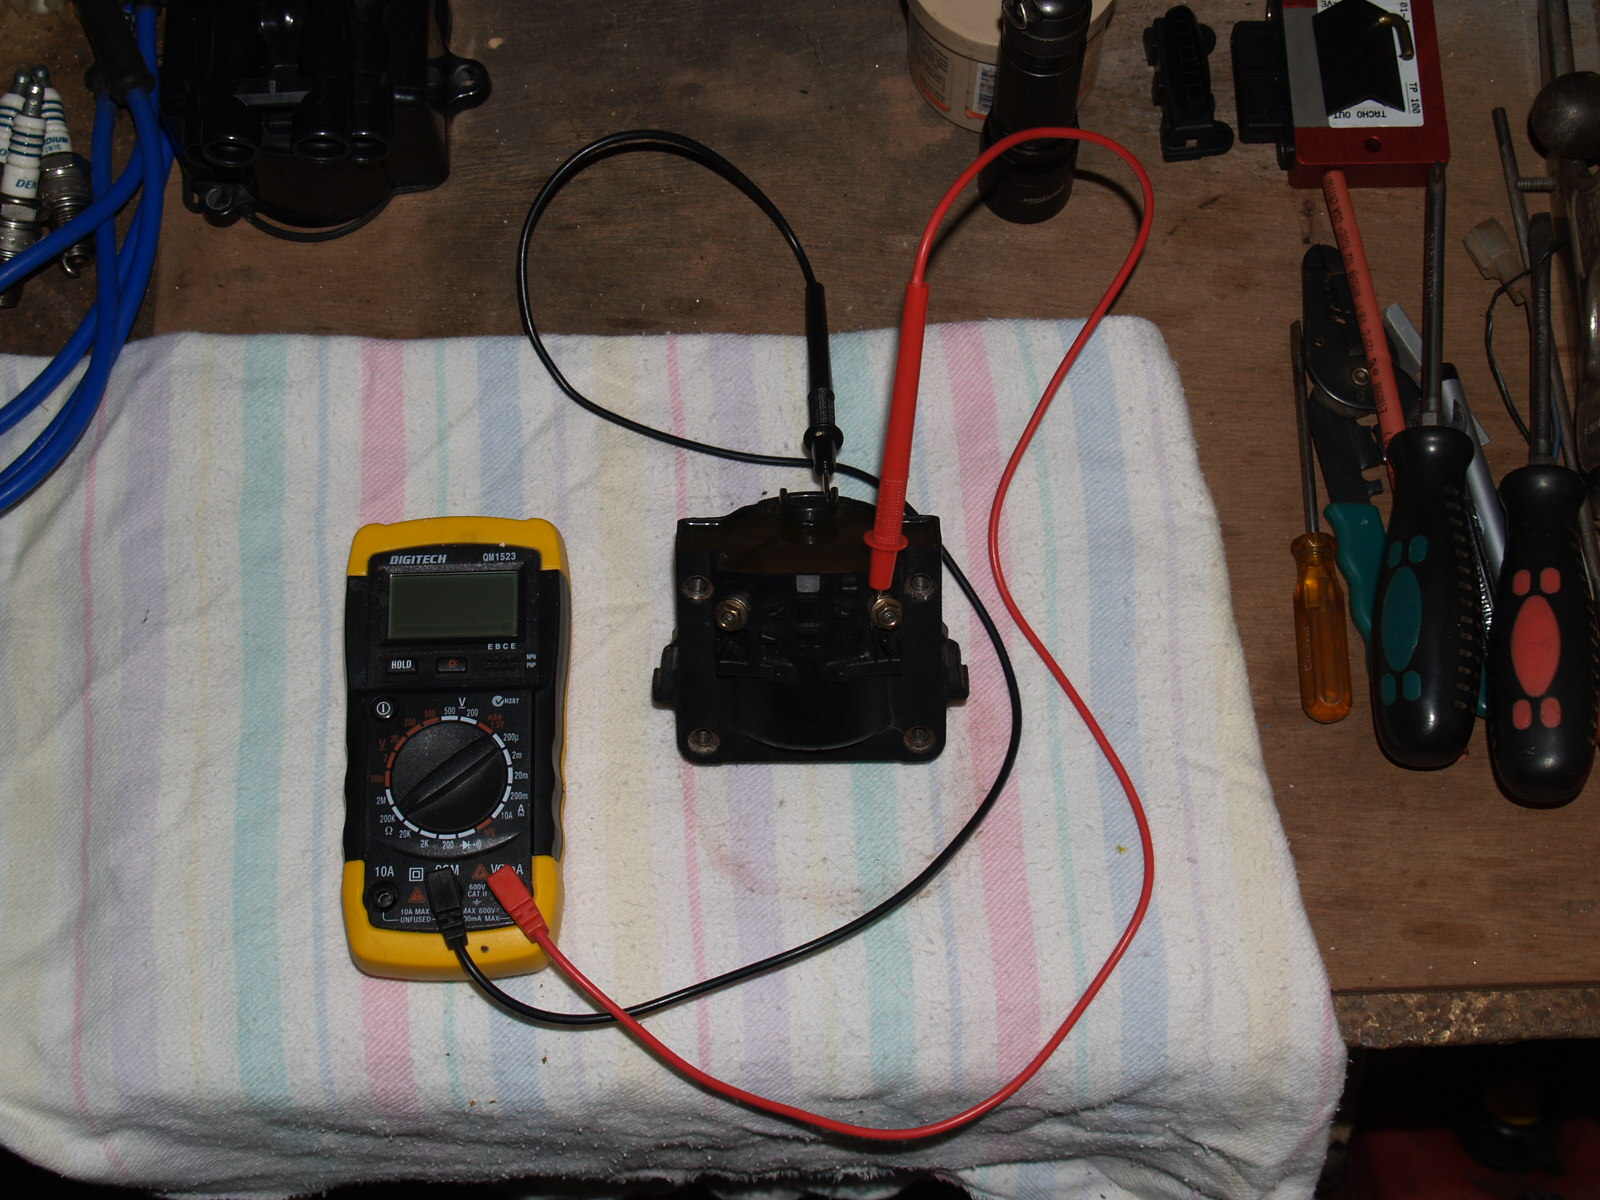 Efi Conversion Toyota 4y Supercharged Rebuild Dicktator Ecu Wiring Diagram Old Coil Secondary Reading Blank